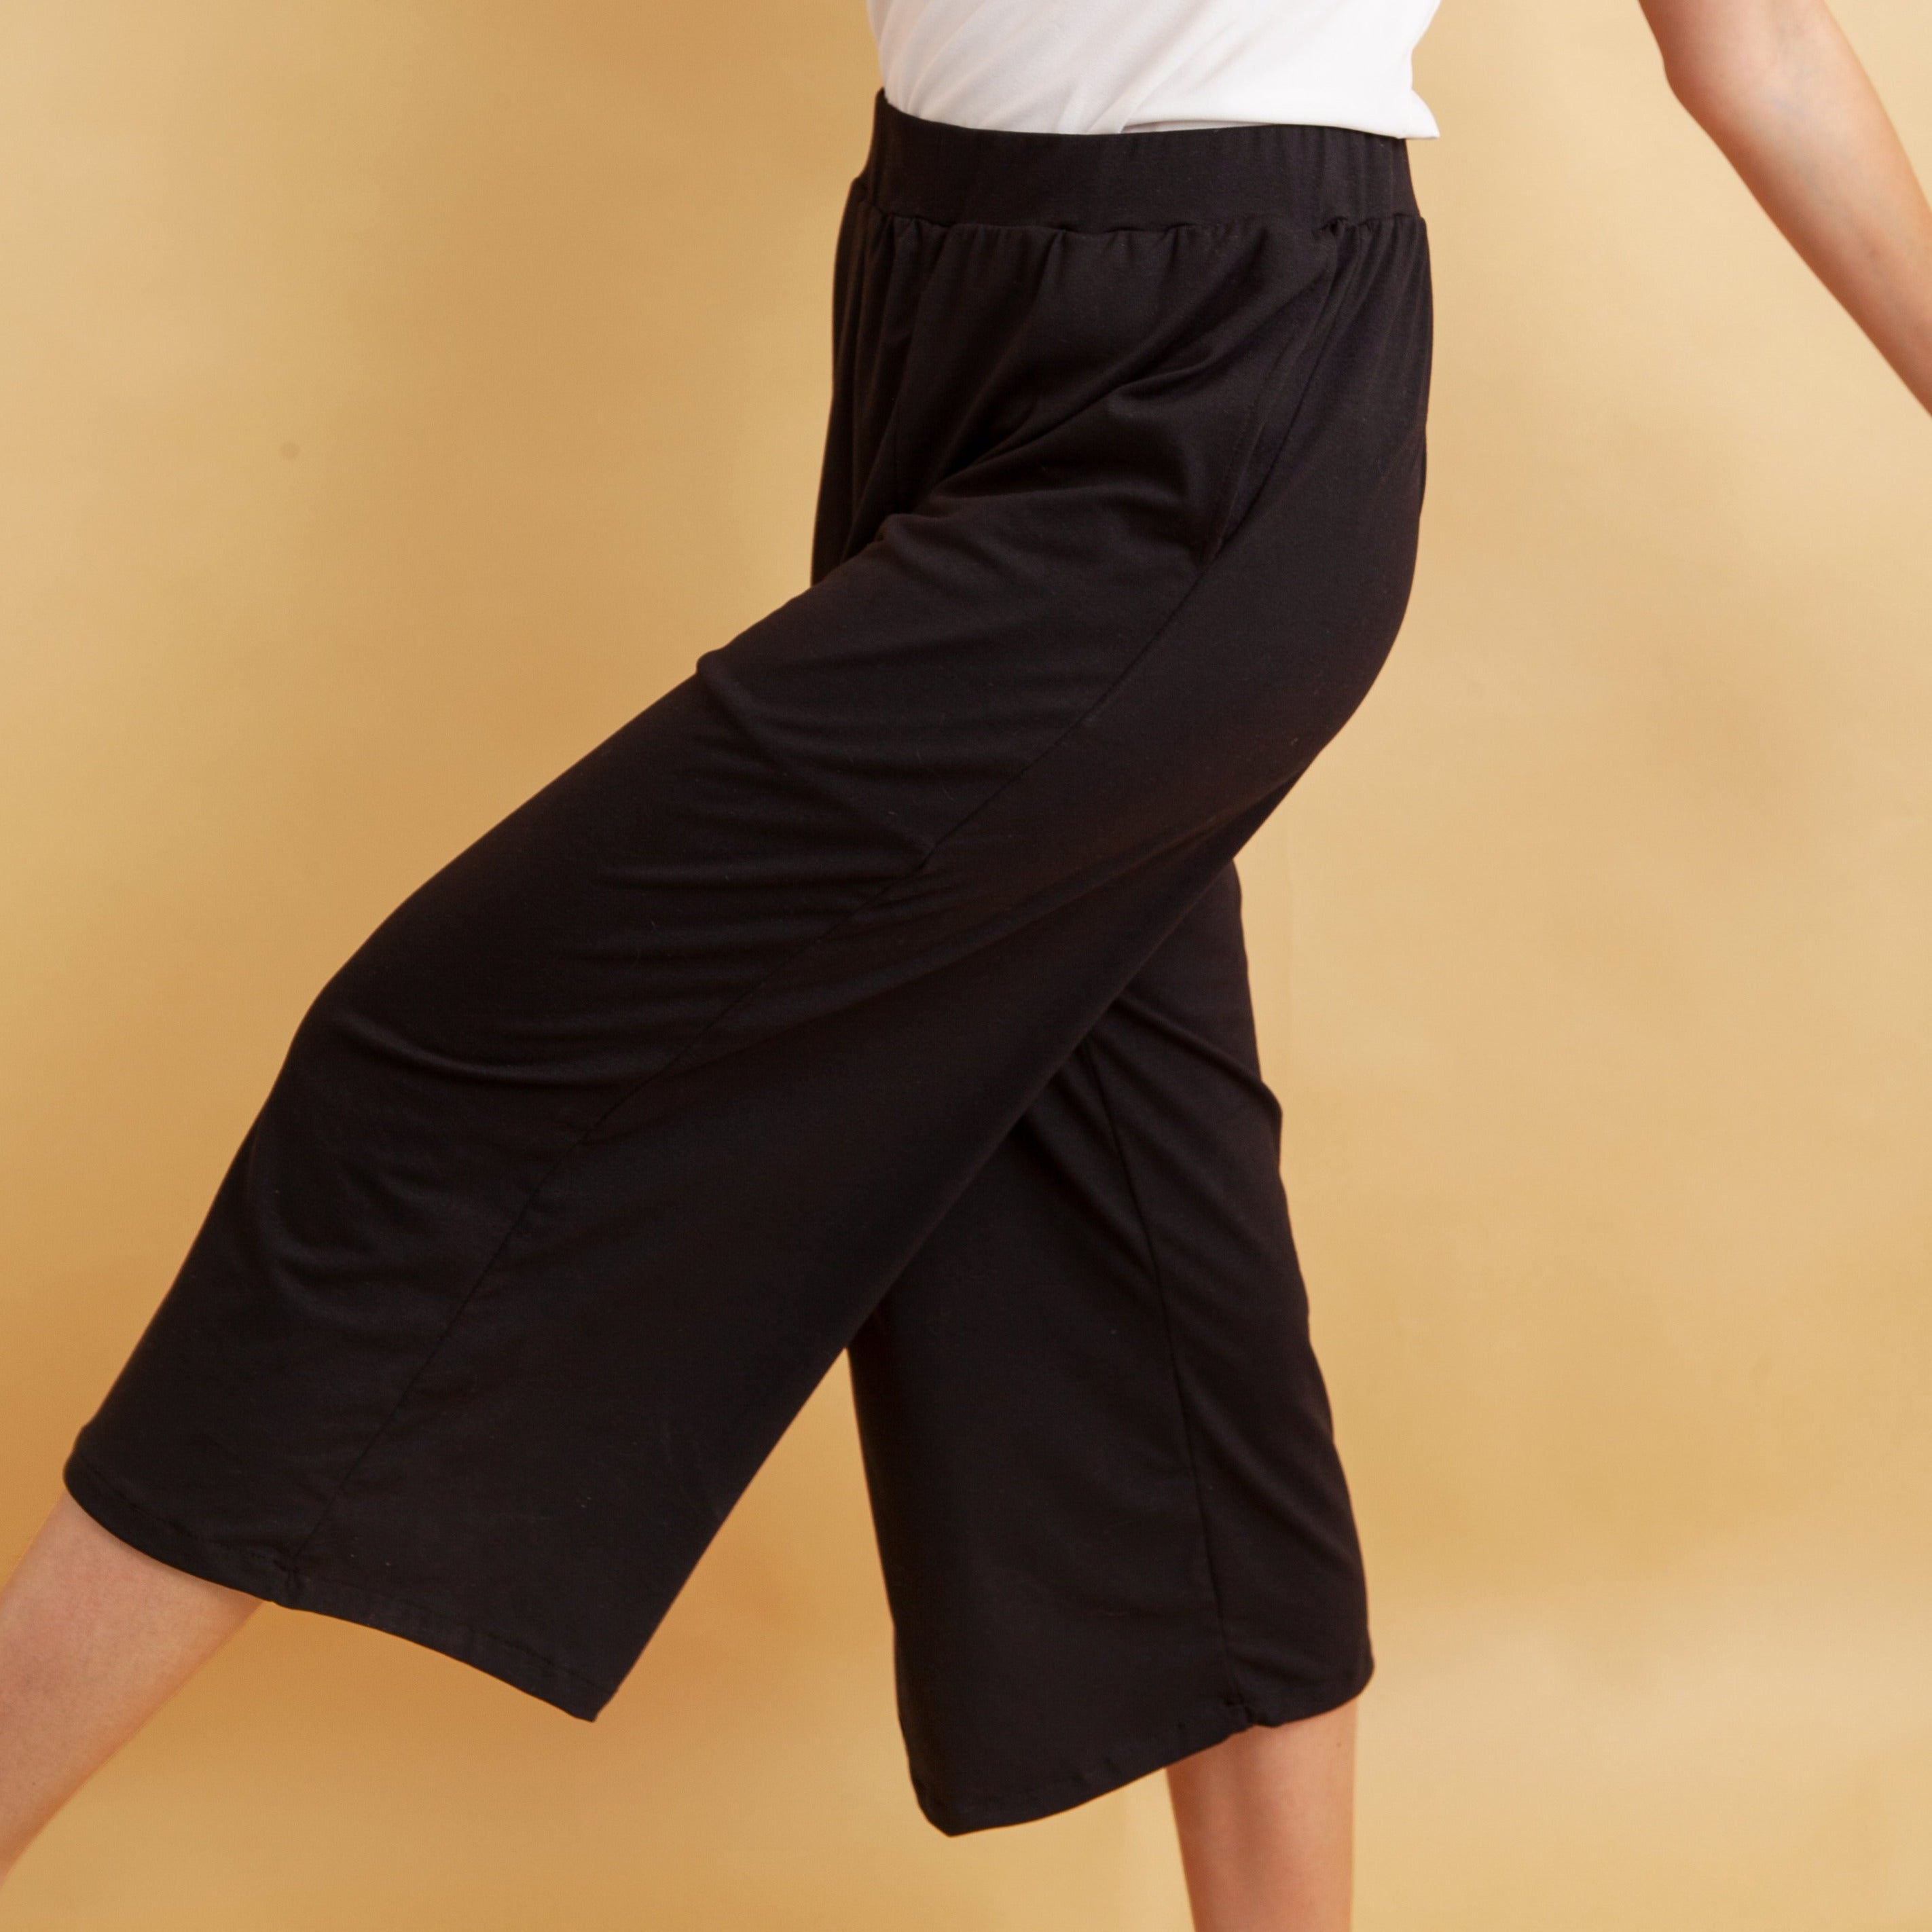 Effortless Culottes in Black